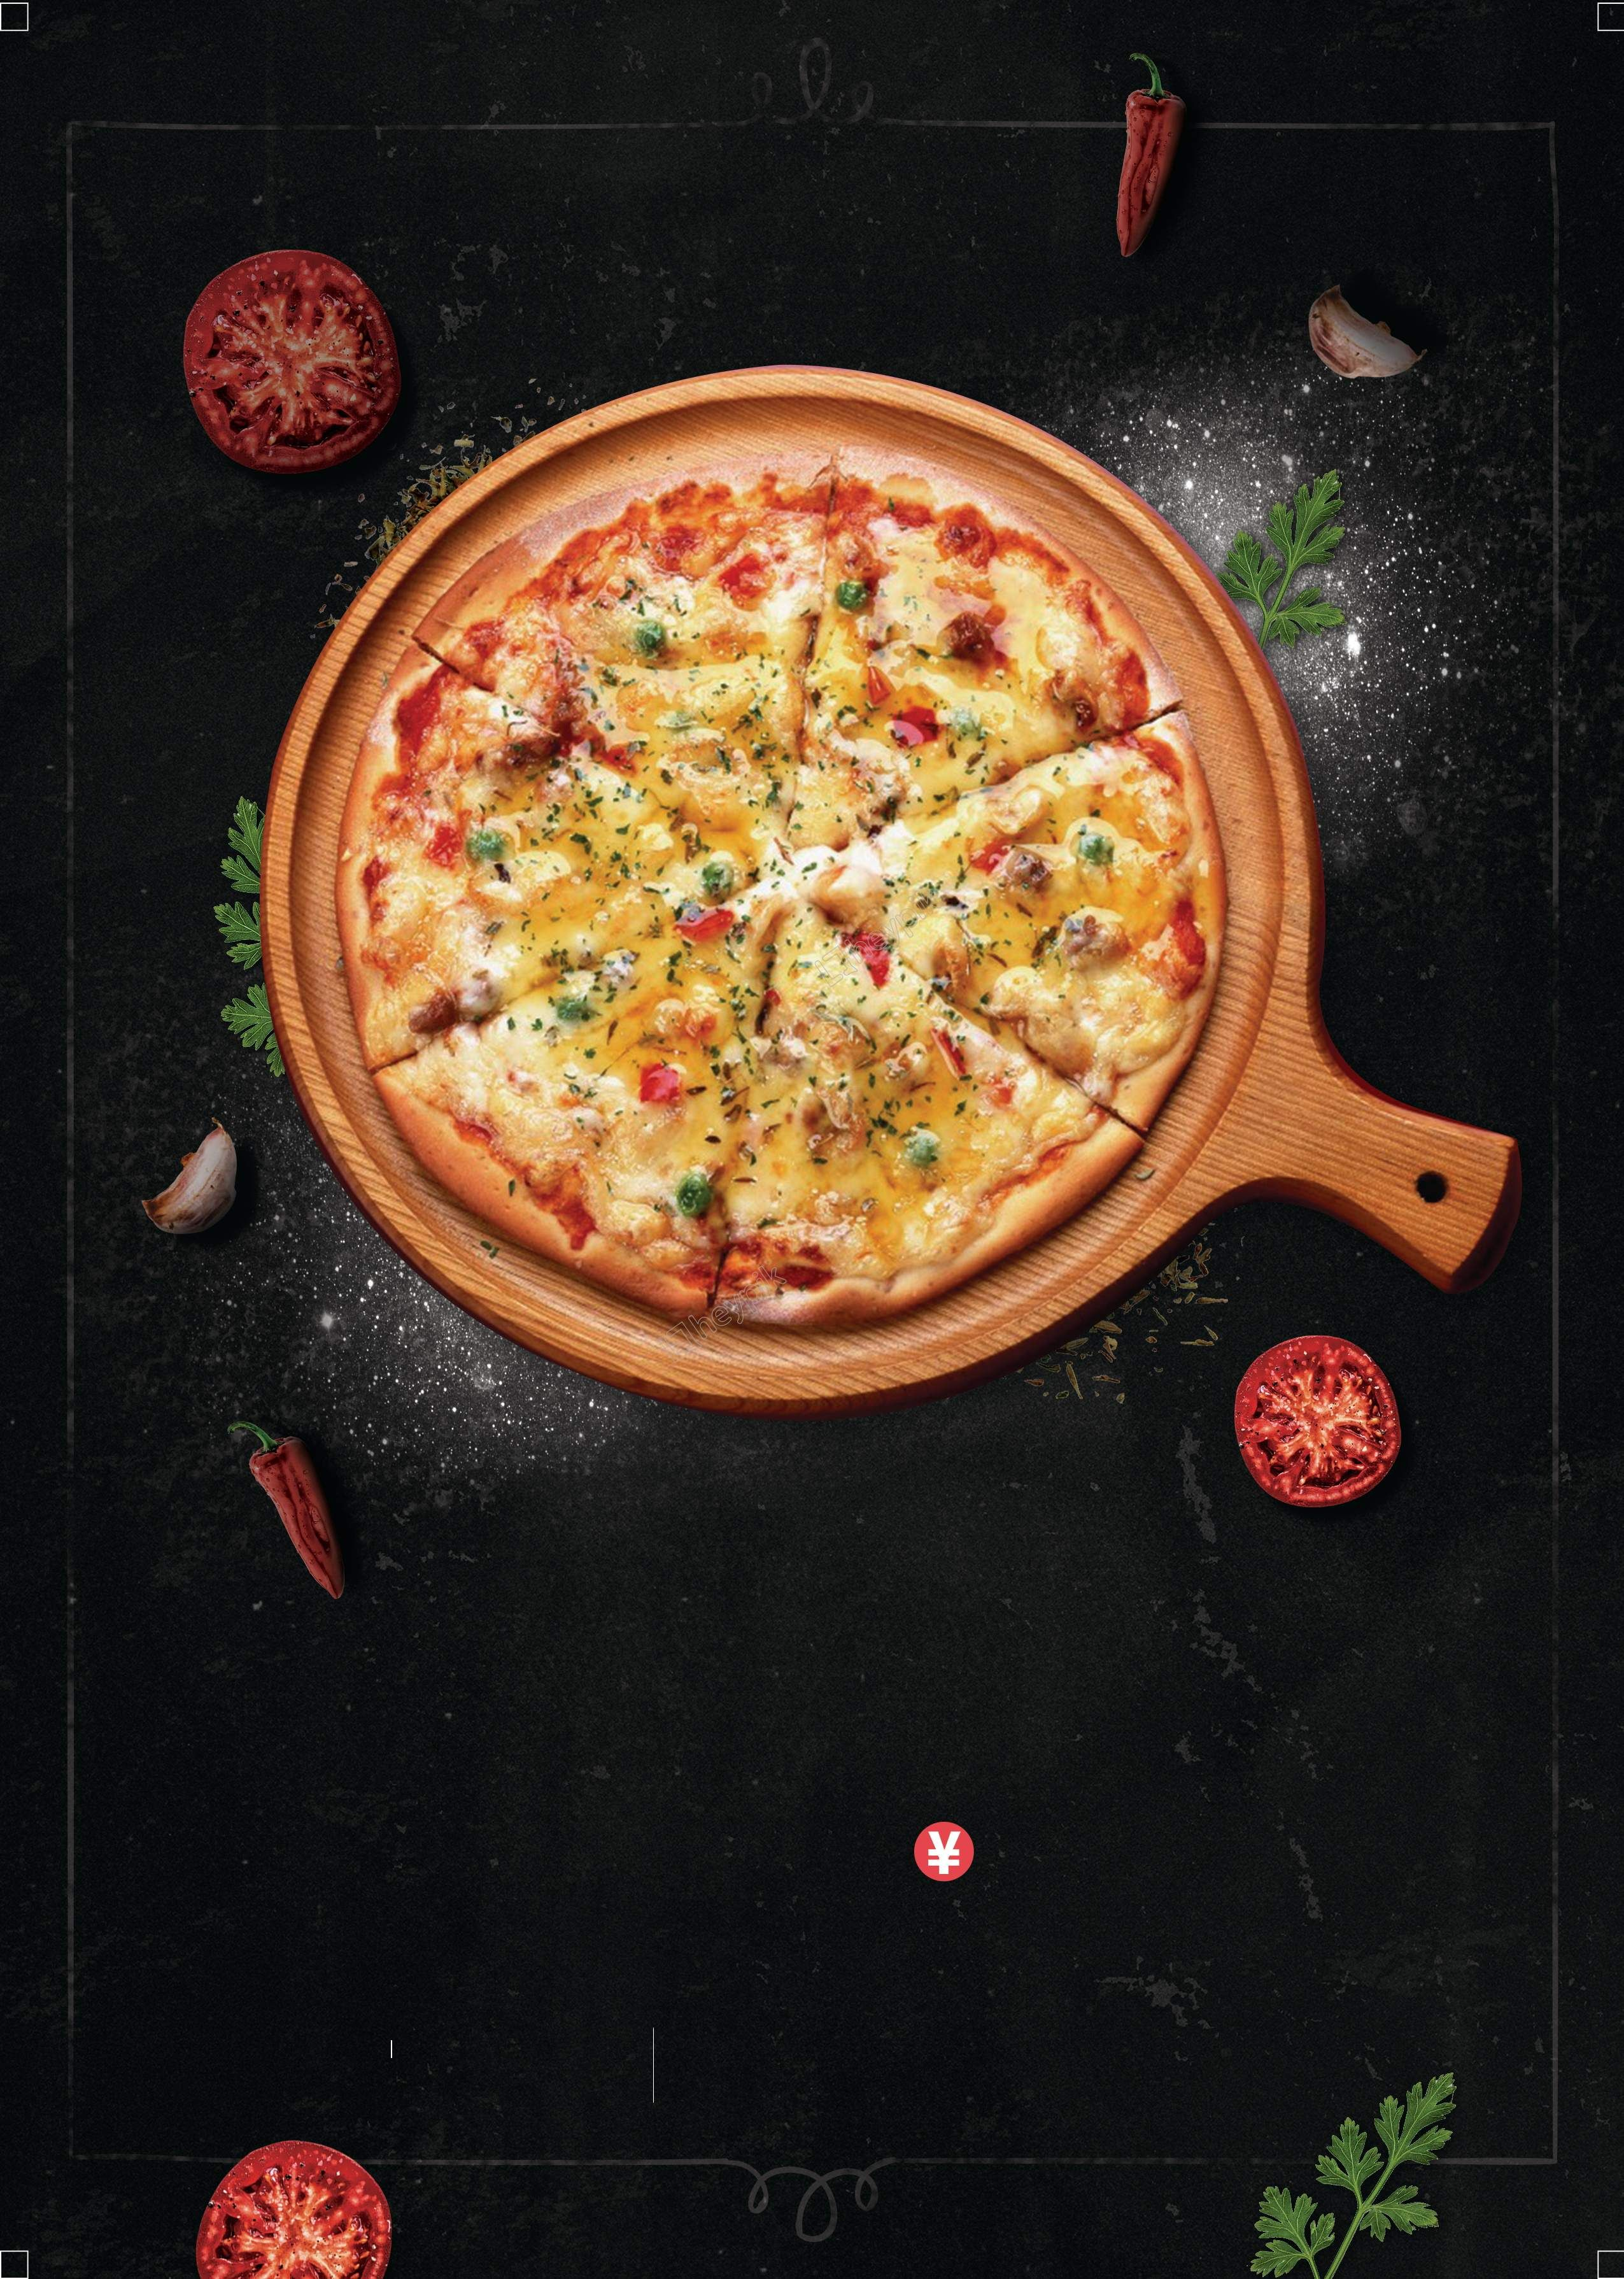 Wallpaper Food Cooking Grill Vegetables Peppers: Advertising Background Food Pizza Vegetables Vector